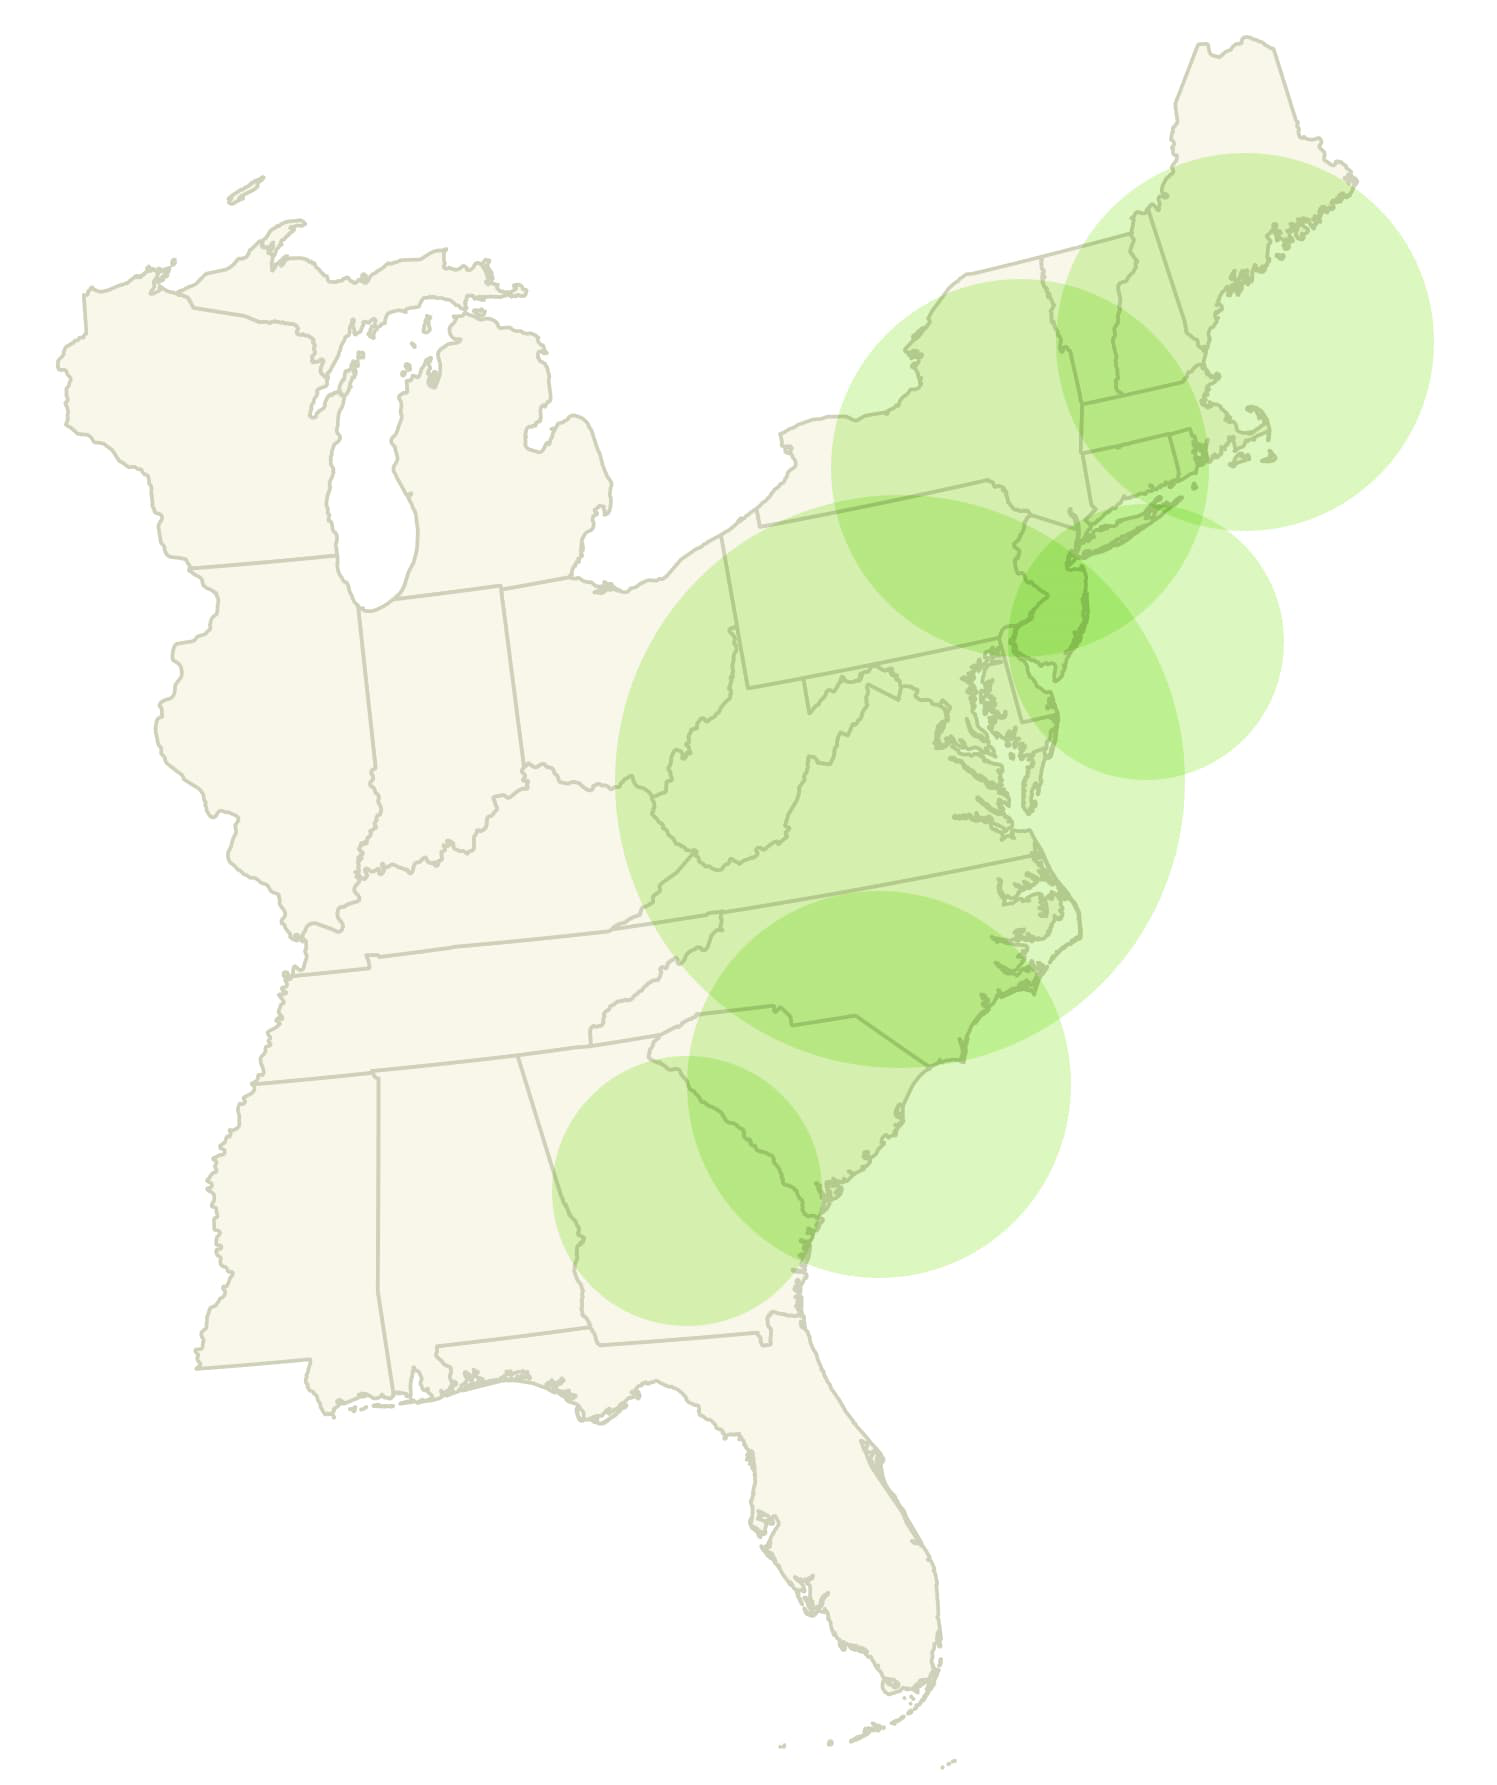 H&S Bakery Baked Bread distribution map (East Coast - U.S.)